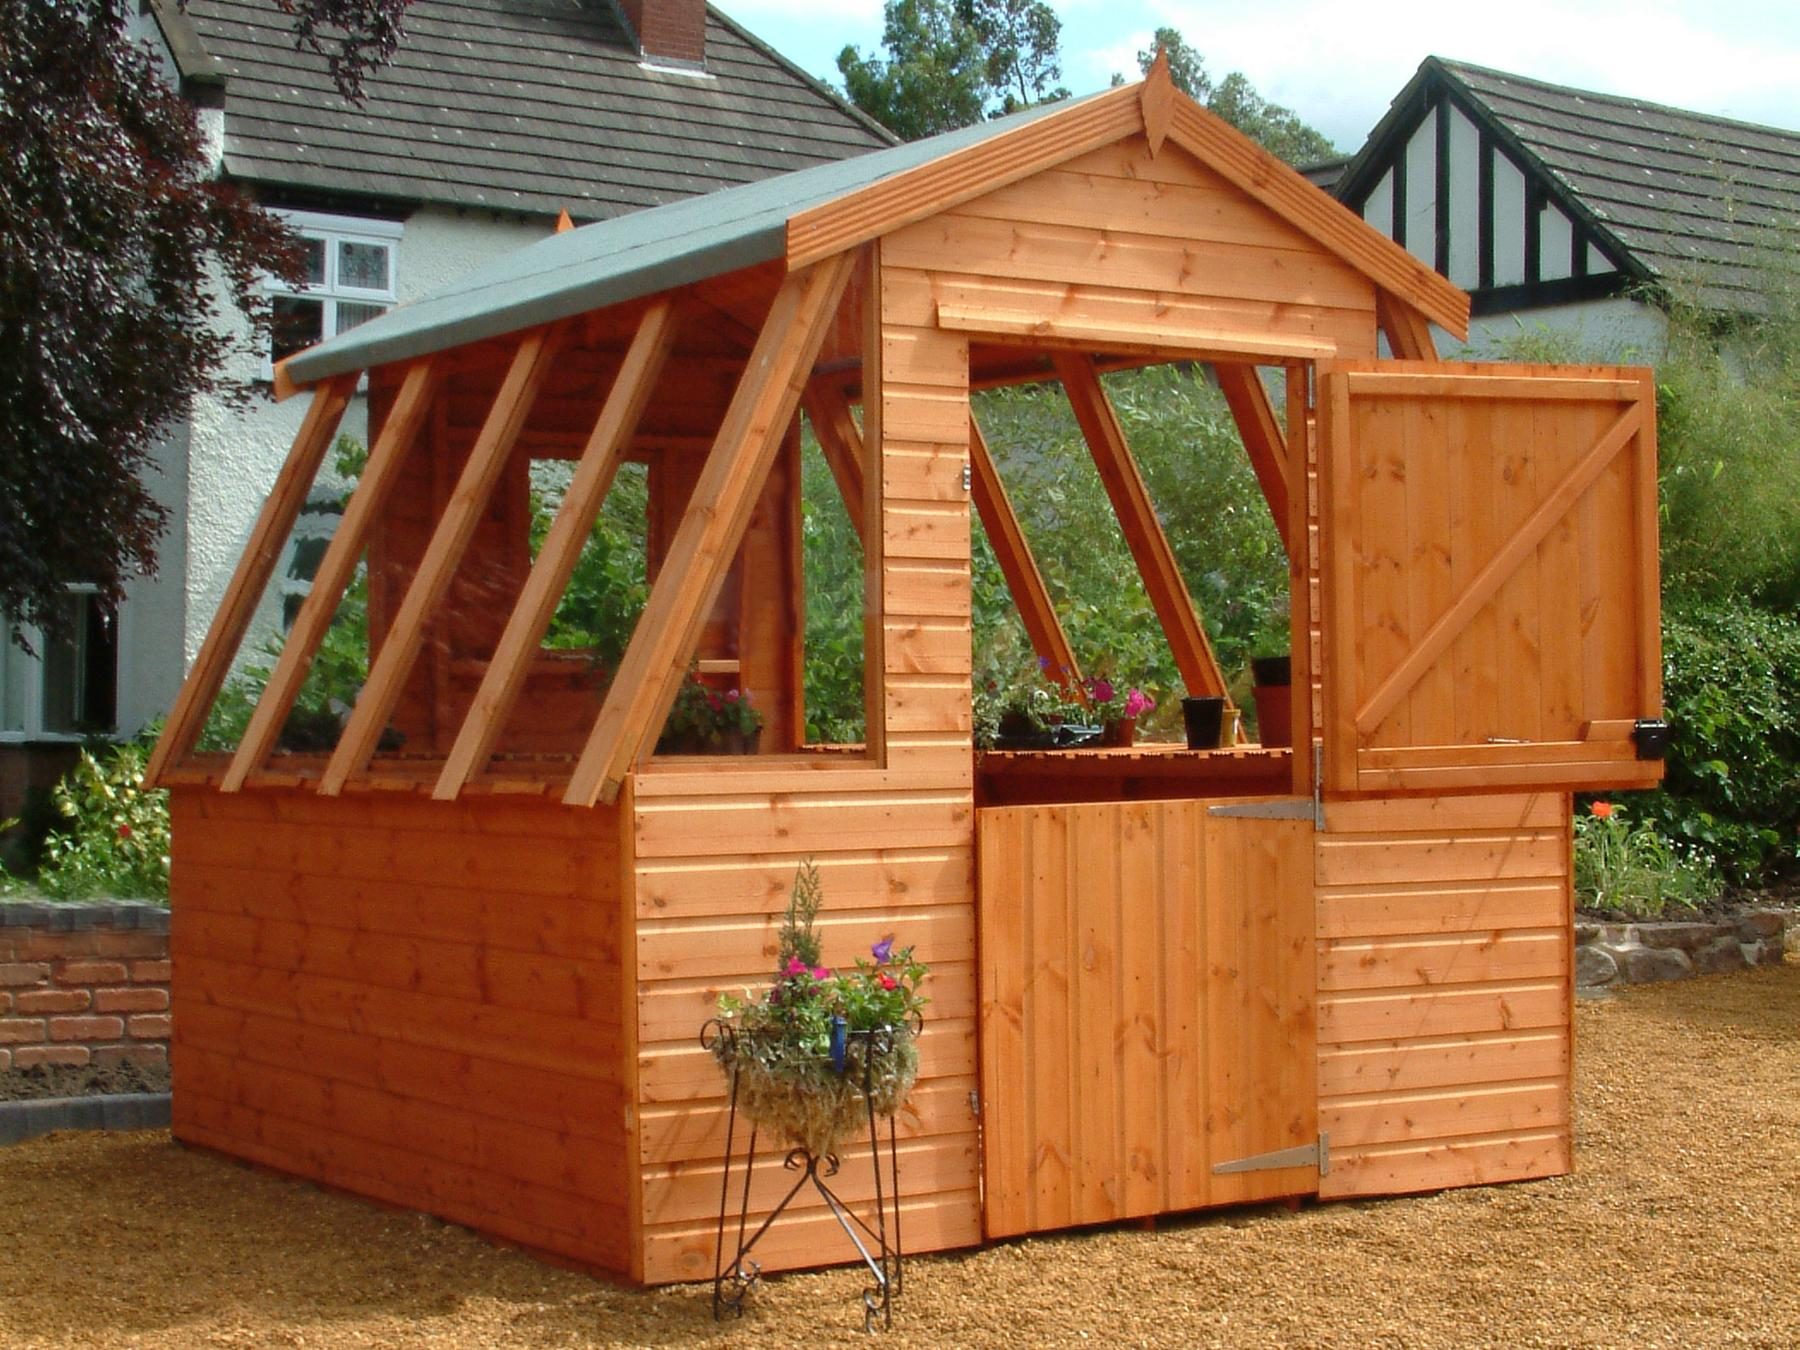 Pictures of potting sheds interior joy studio design Barn plans and outbuildings